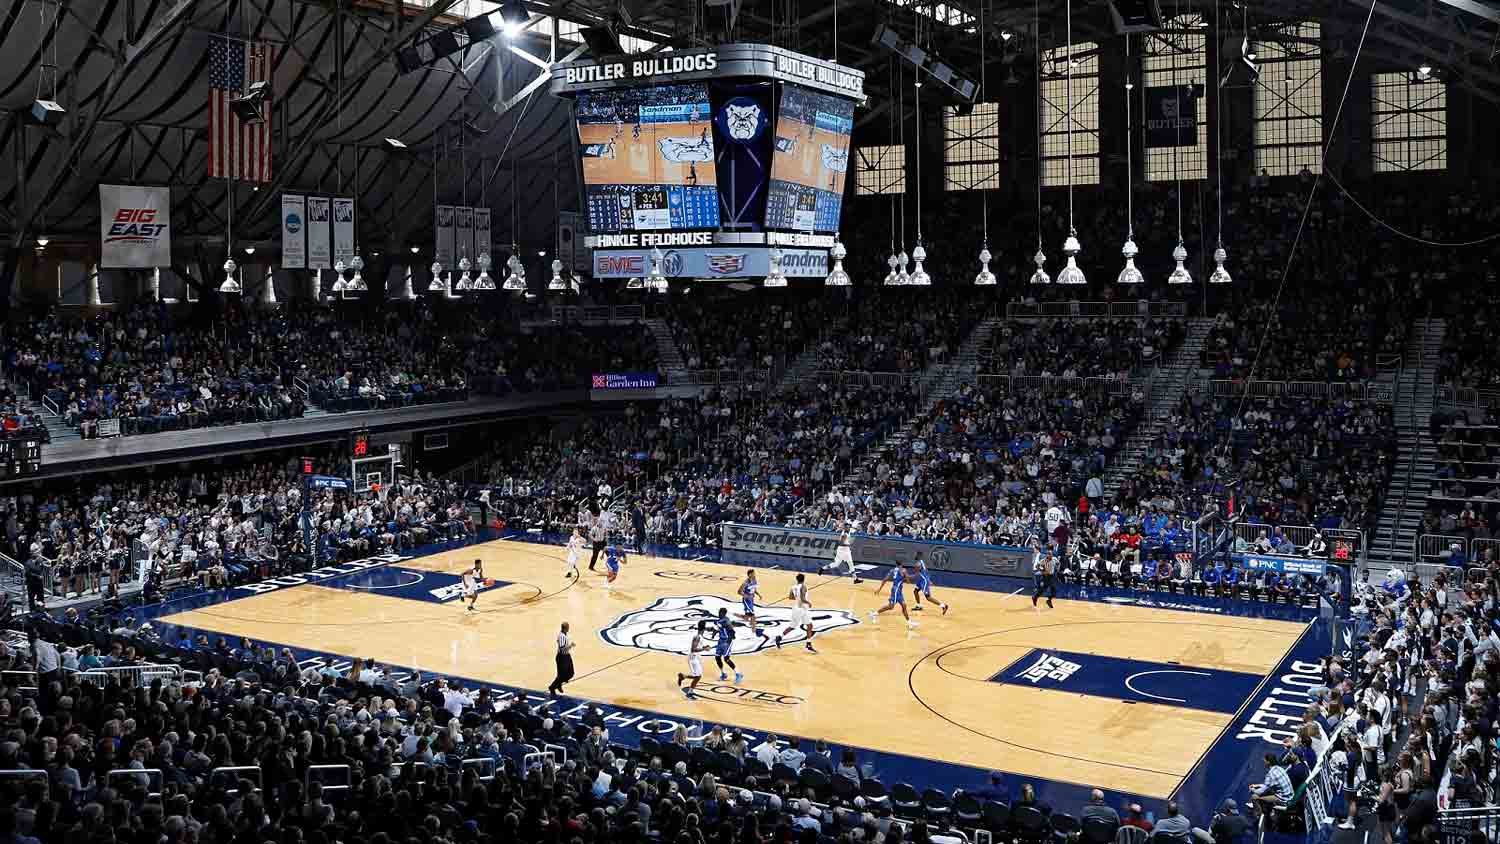 Hinkle Fieldhouse at Butler University 4